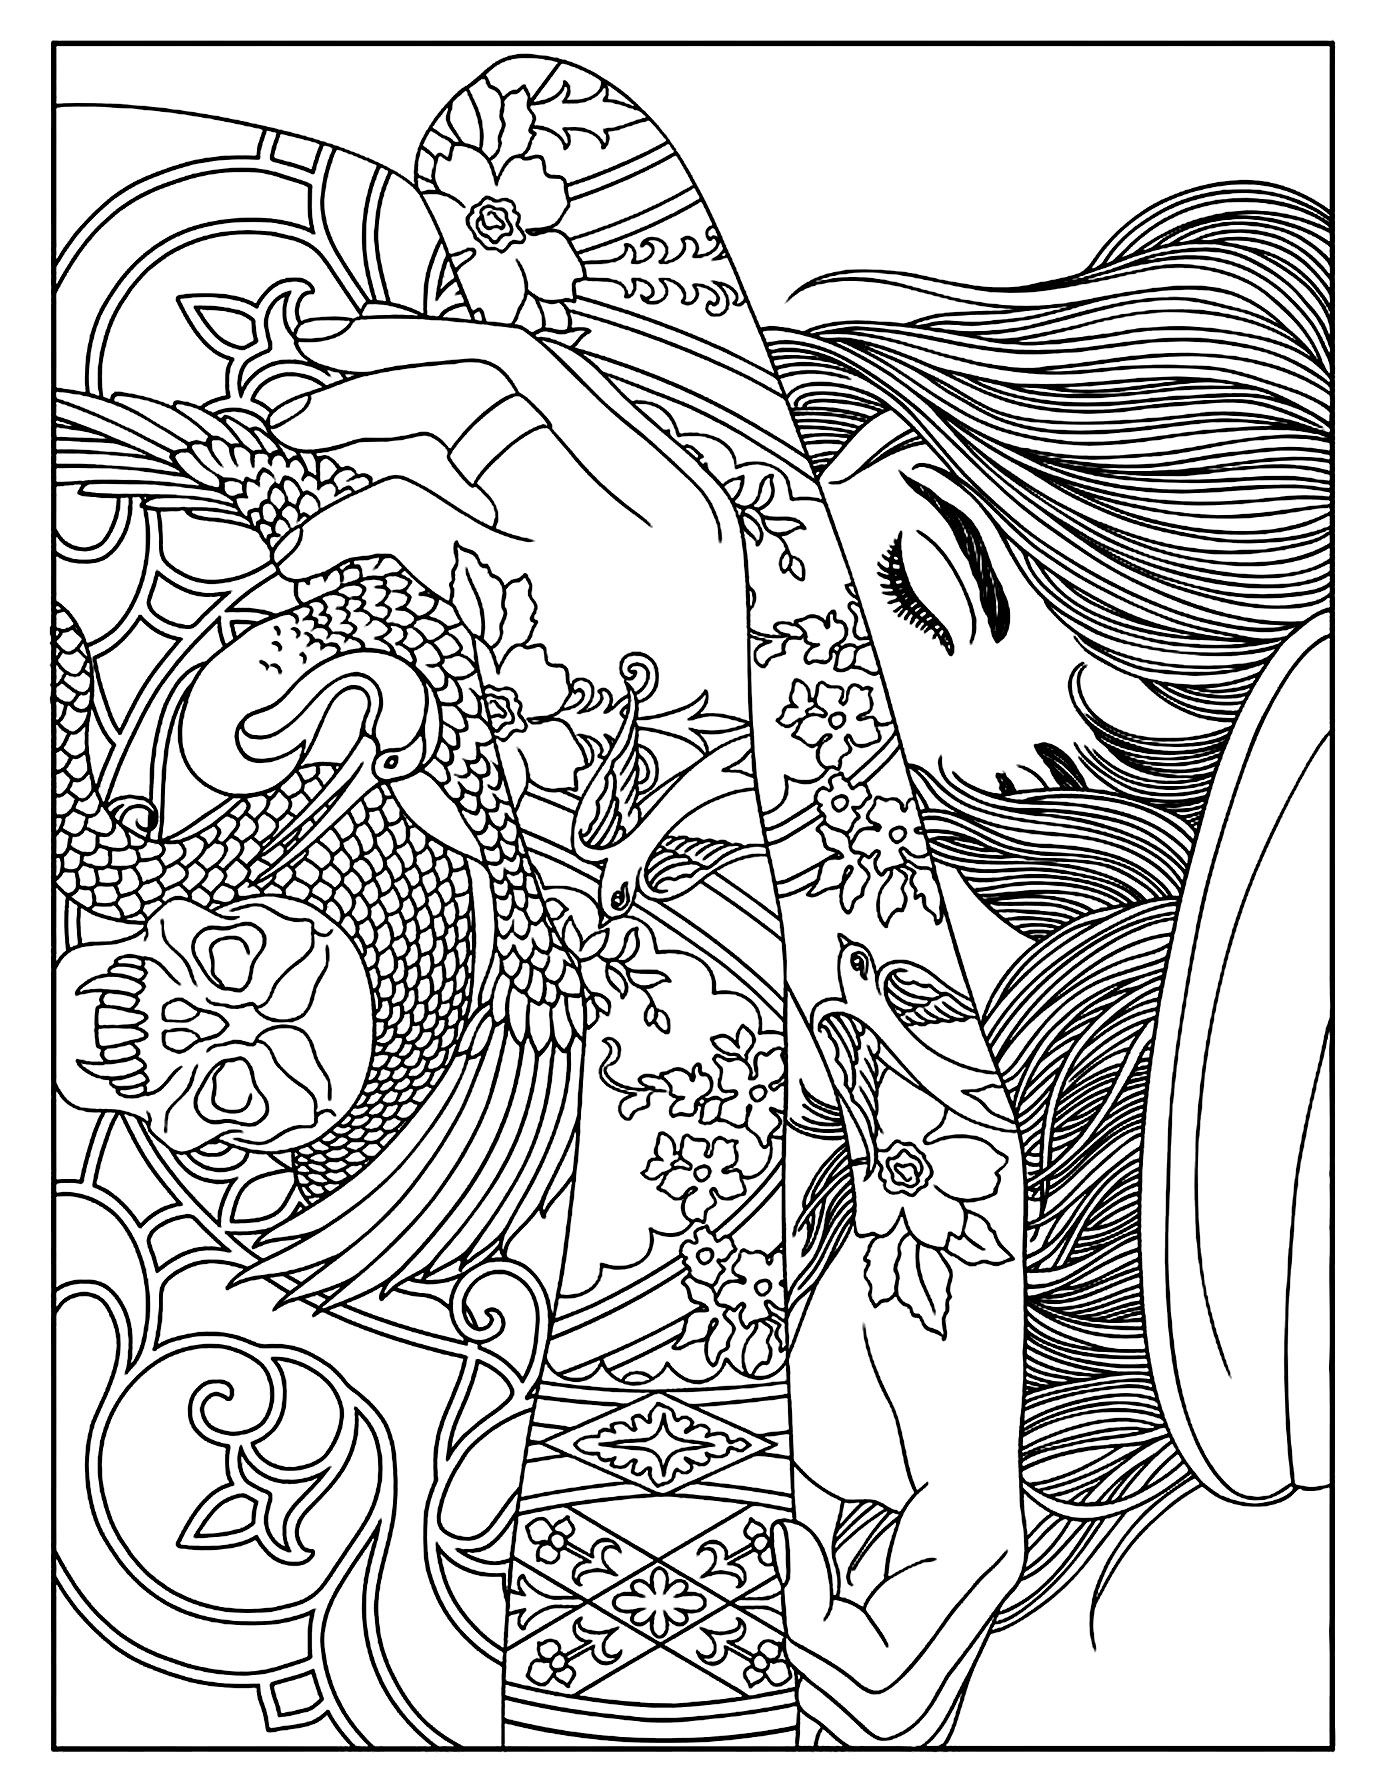 Tattoo Coloring Pages For Adults Coloring Pages For Girls Coloring Book Pages Coloring Pages